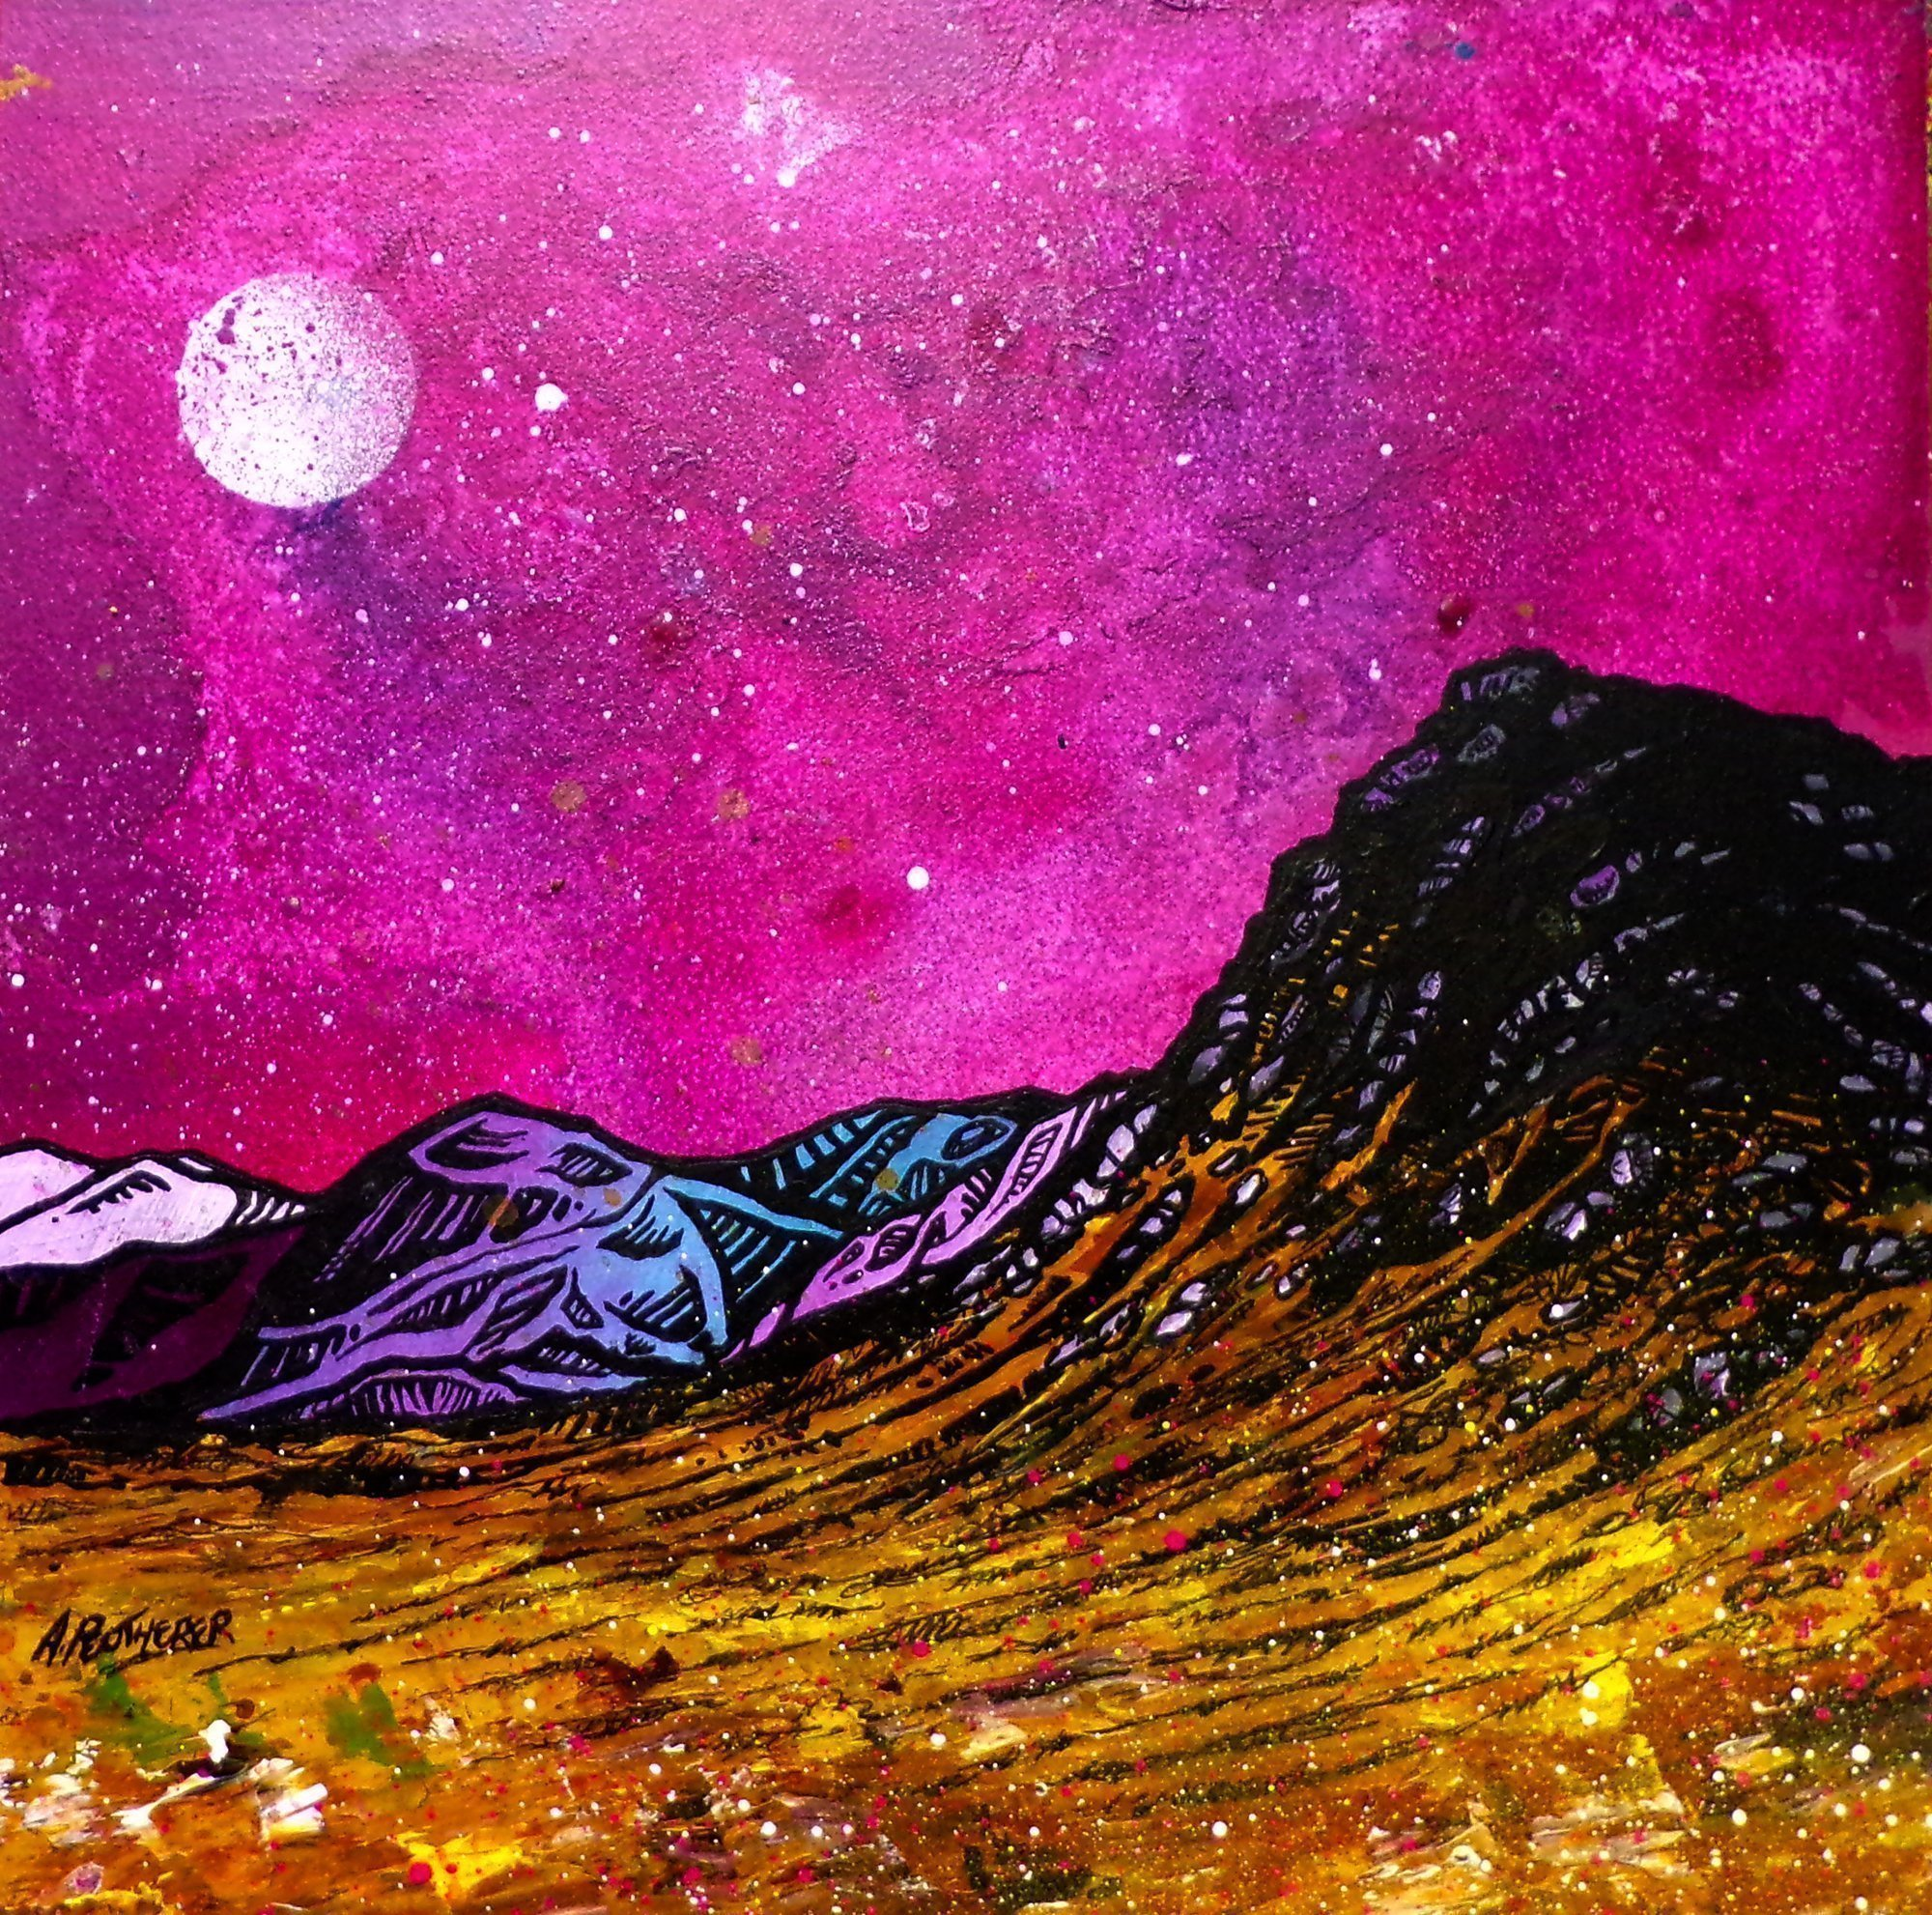 Glencoe skyscape painting and prints, Scotland. By Andy Peutherer